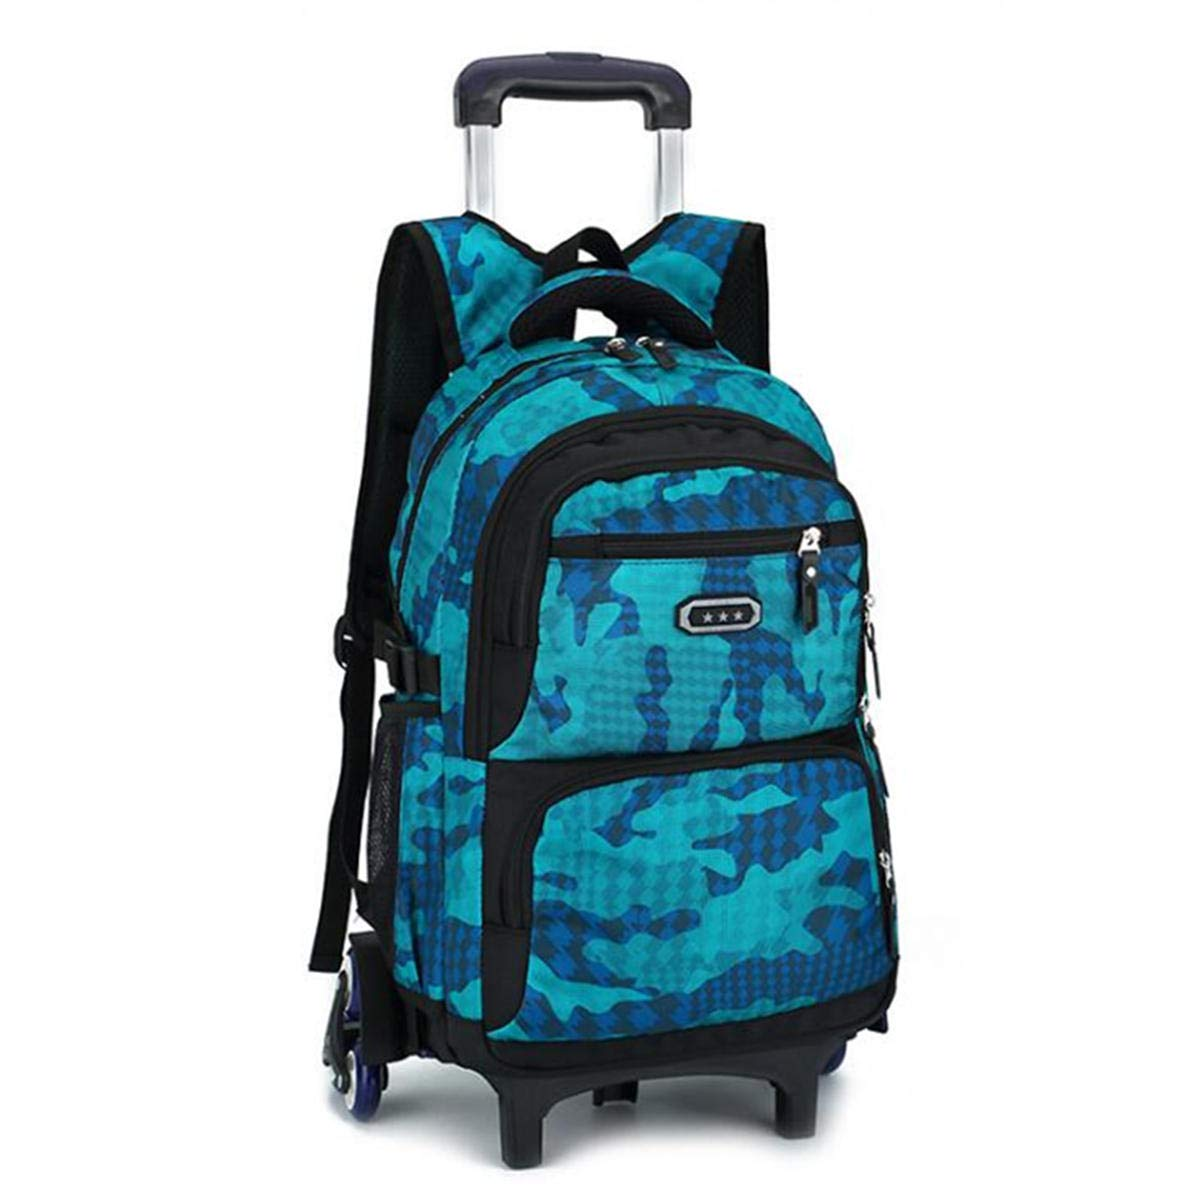 F.S.M. 29L Detachable Wheels Trolley Luggage Backpack Travel Rucksack Teenager Student School Bag Pack - Lake Blue A by F.S.M.